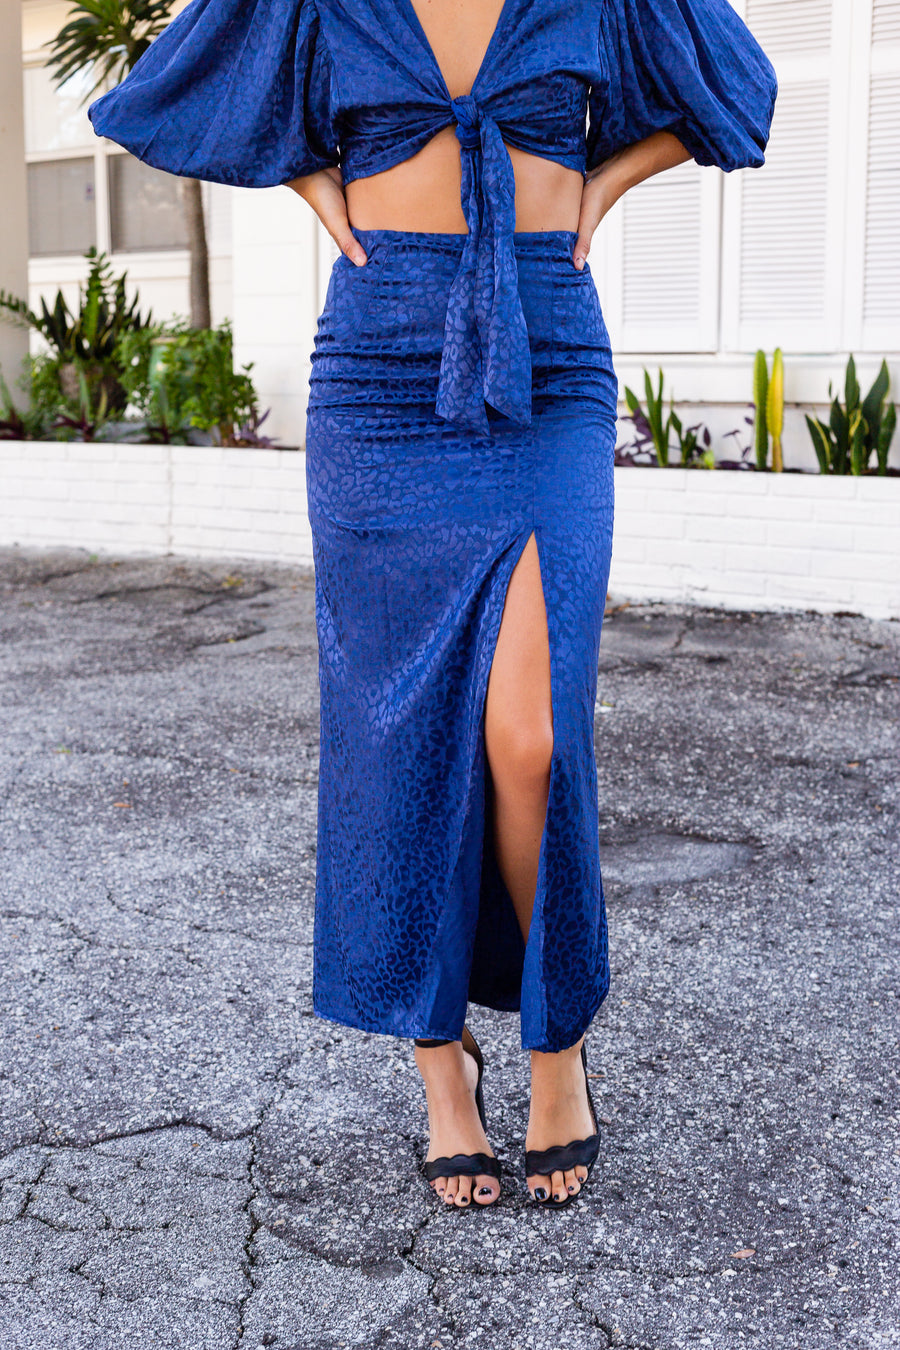 This skirt has a fitted waistband that leads down a darted and parallel cut skirt with a slit at the front. It meets in the middle of the calves for a classic midi skirt look.